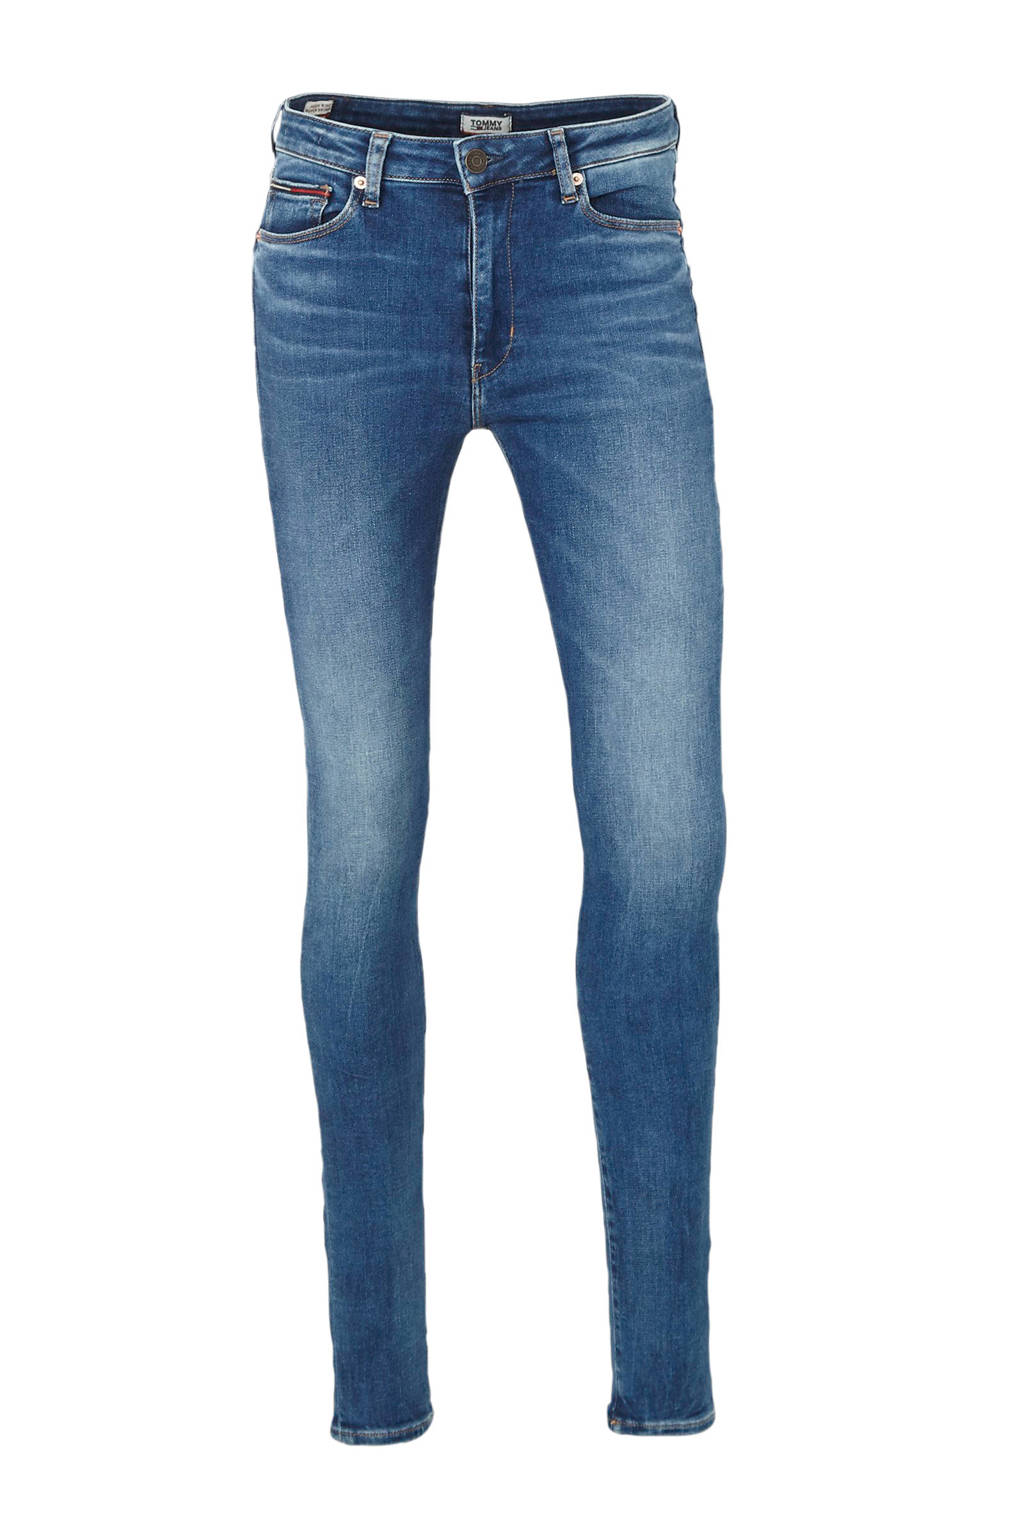 Tommy Jeans skinny jeans maine mid blue, Maine mid blue